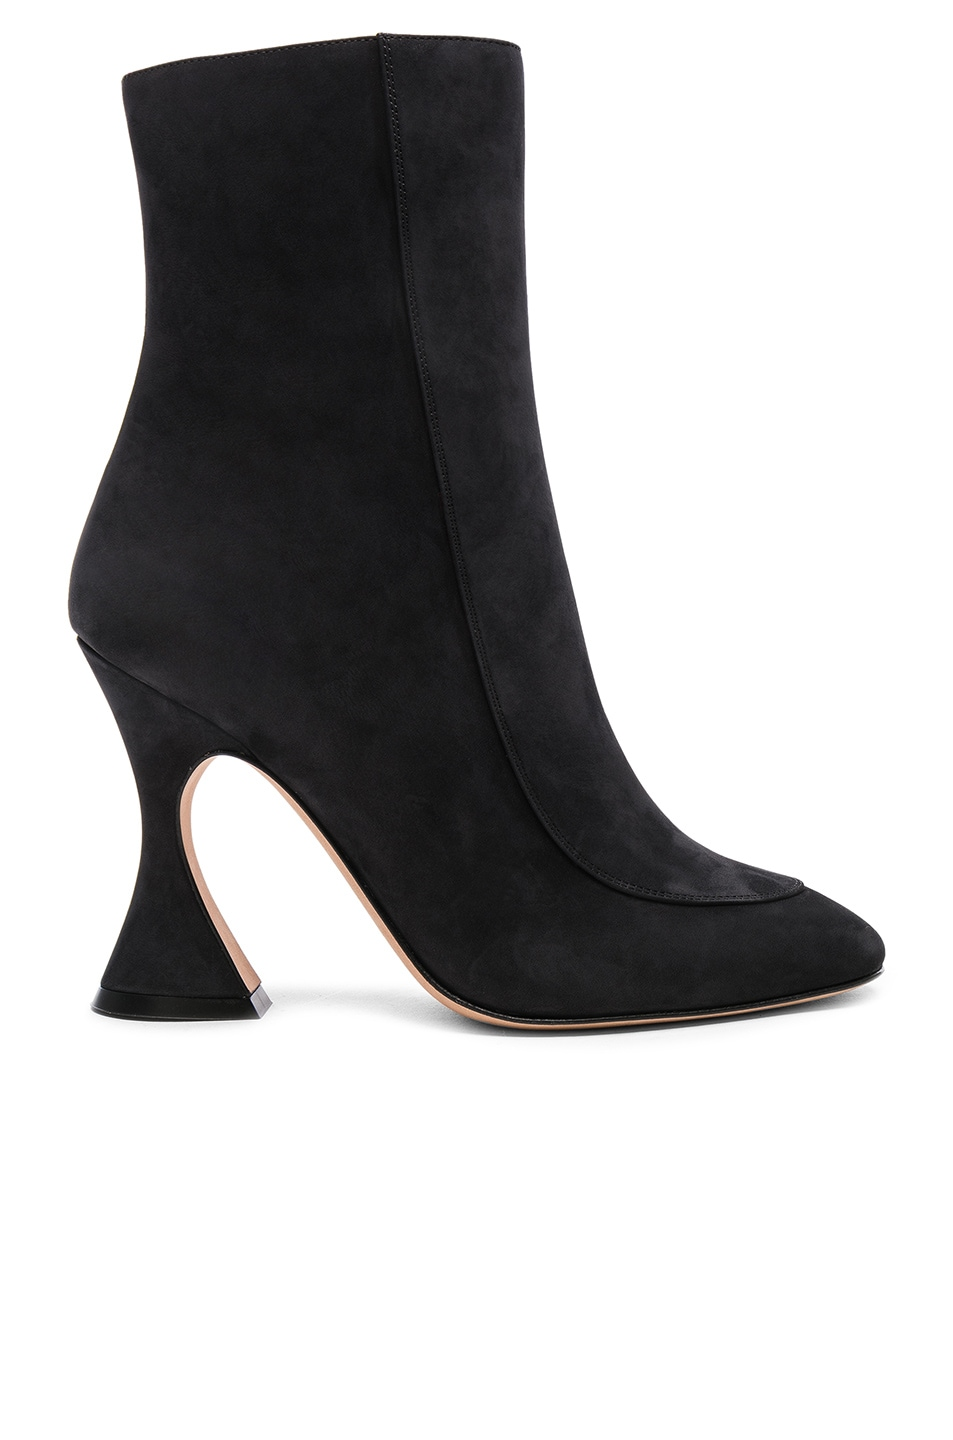 Sies marjan Emma 100mm suede ankle boots meCX11t